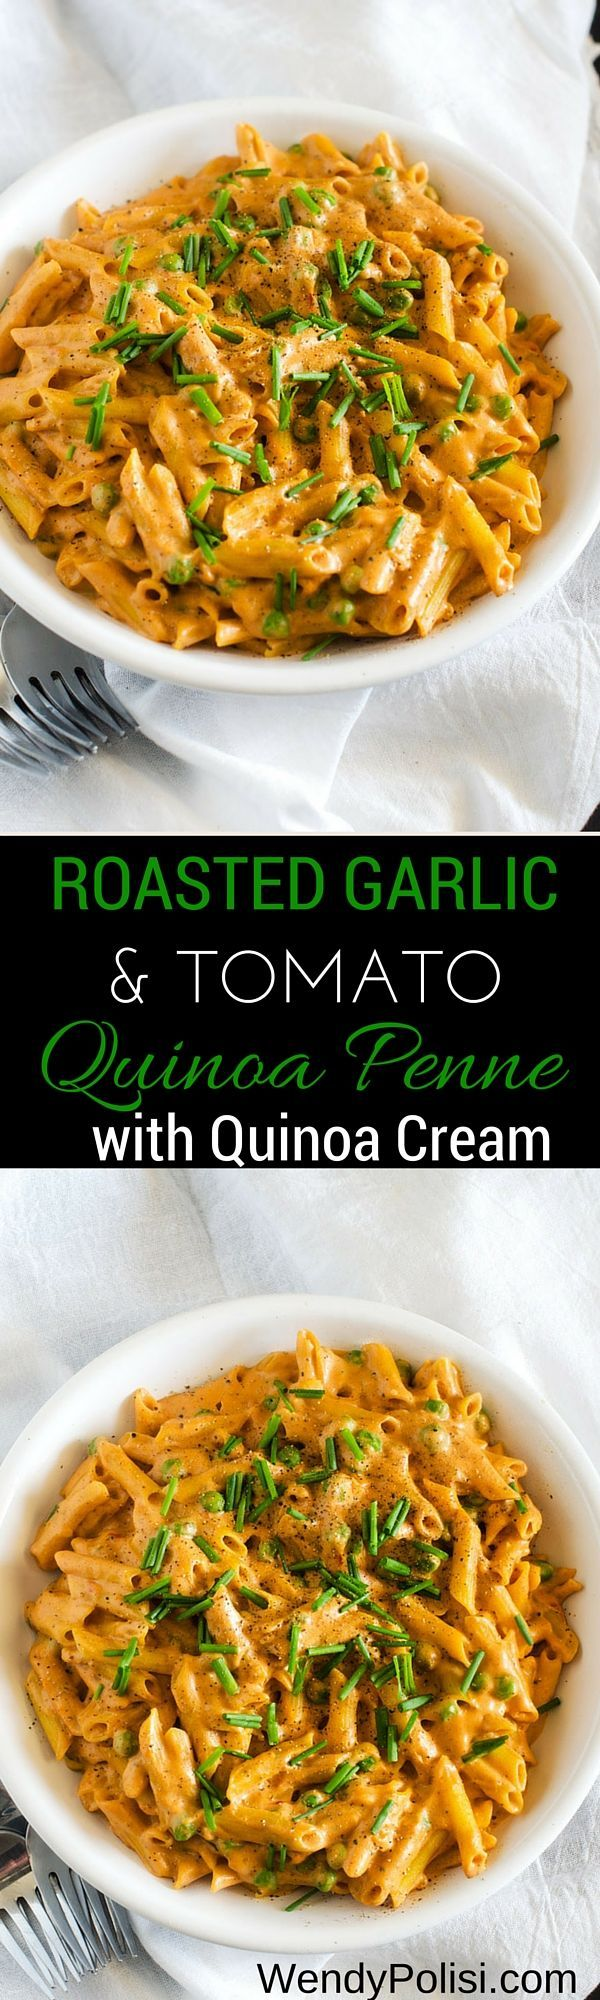 Roasted Garlic & Tomato Quinoa Penne with Quinoa Cream - That's right - we've skipped the heavy cream and instead made a thick, rich and delicious sauce with the help of quinoa!